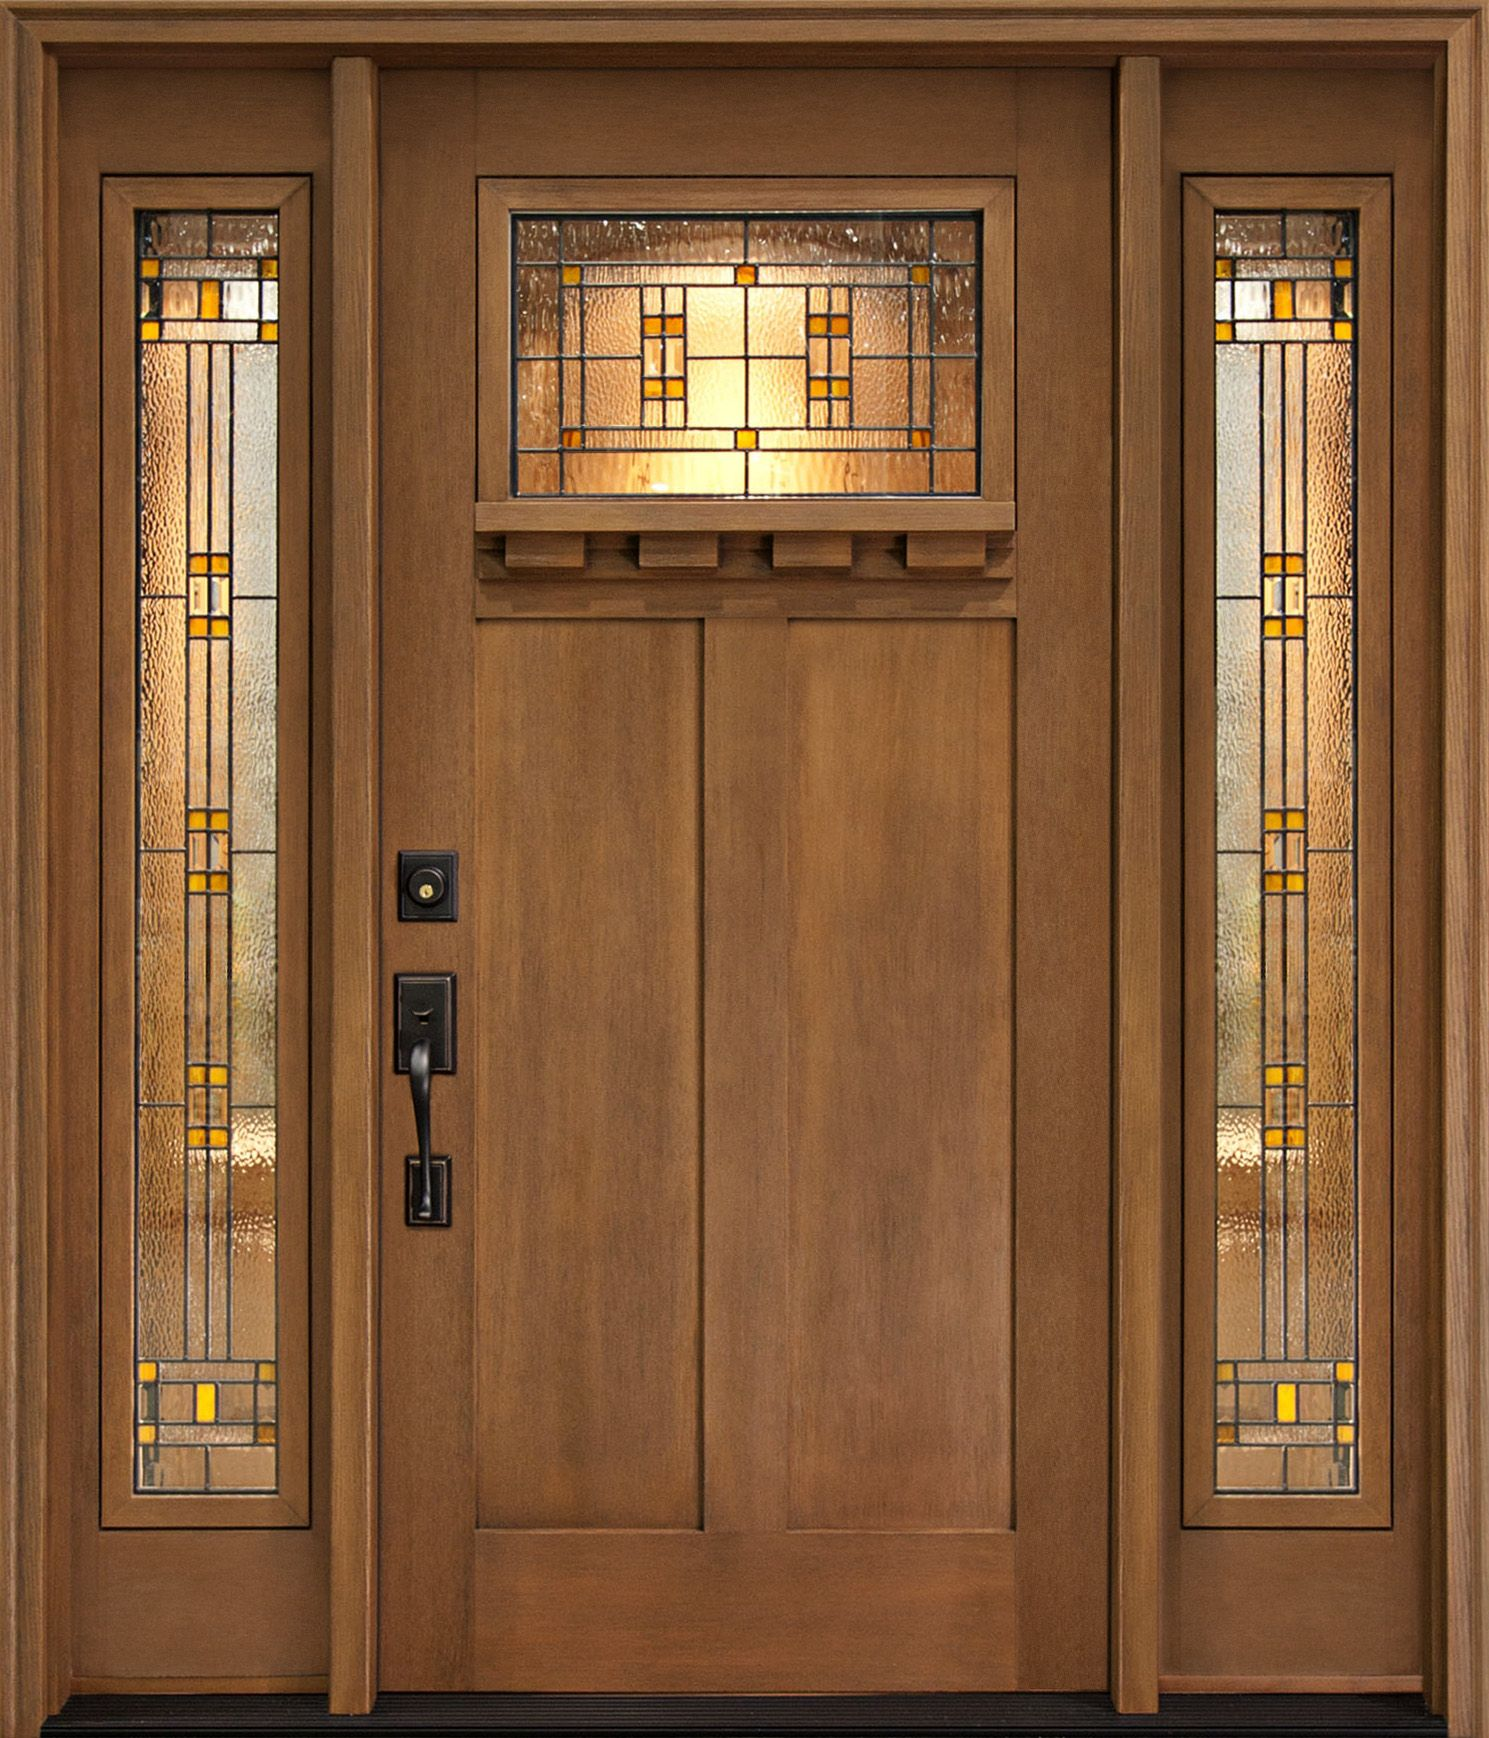 Clopay Craftsman Collection Fibergl Front Door Named Best New Product Of 2017